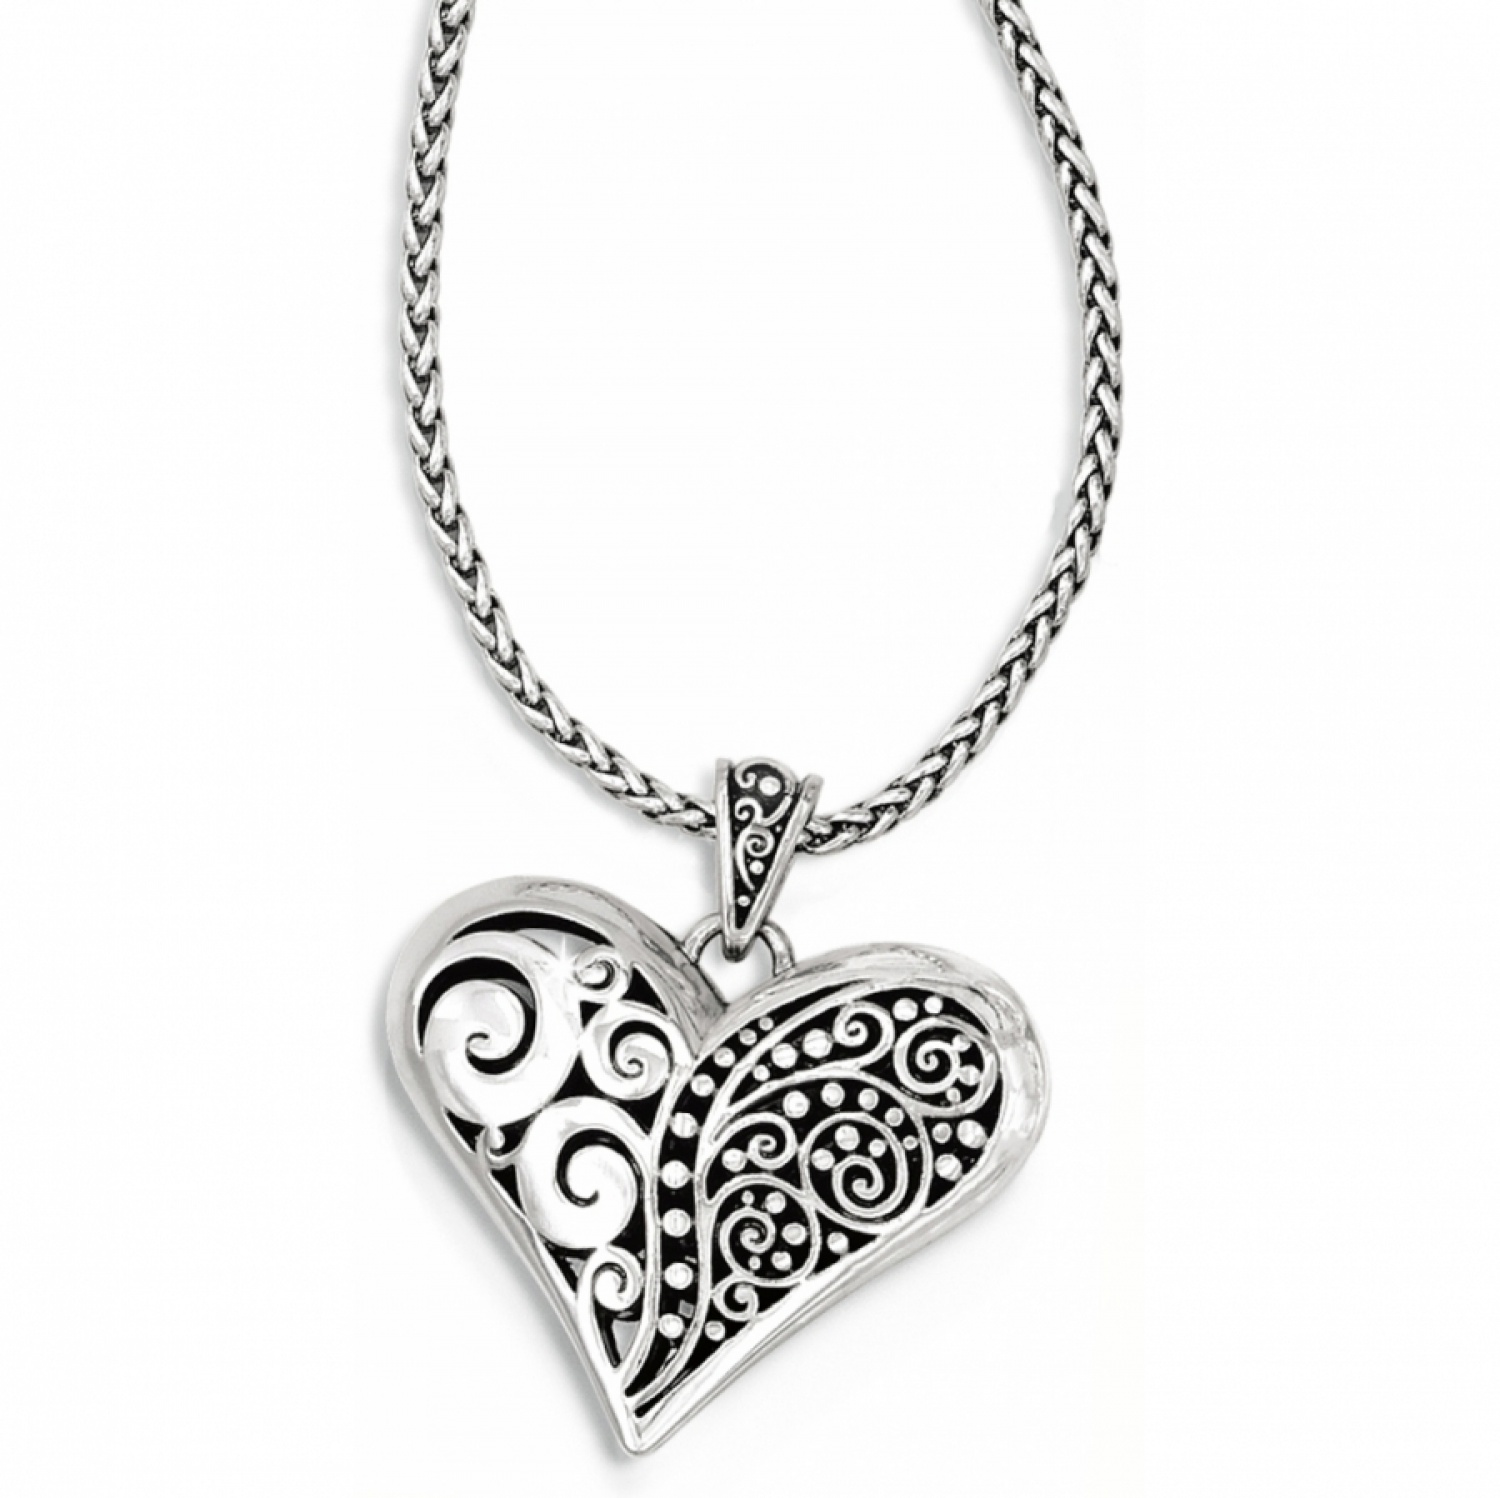 Love Affair Love Affair Necklace Necklaces